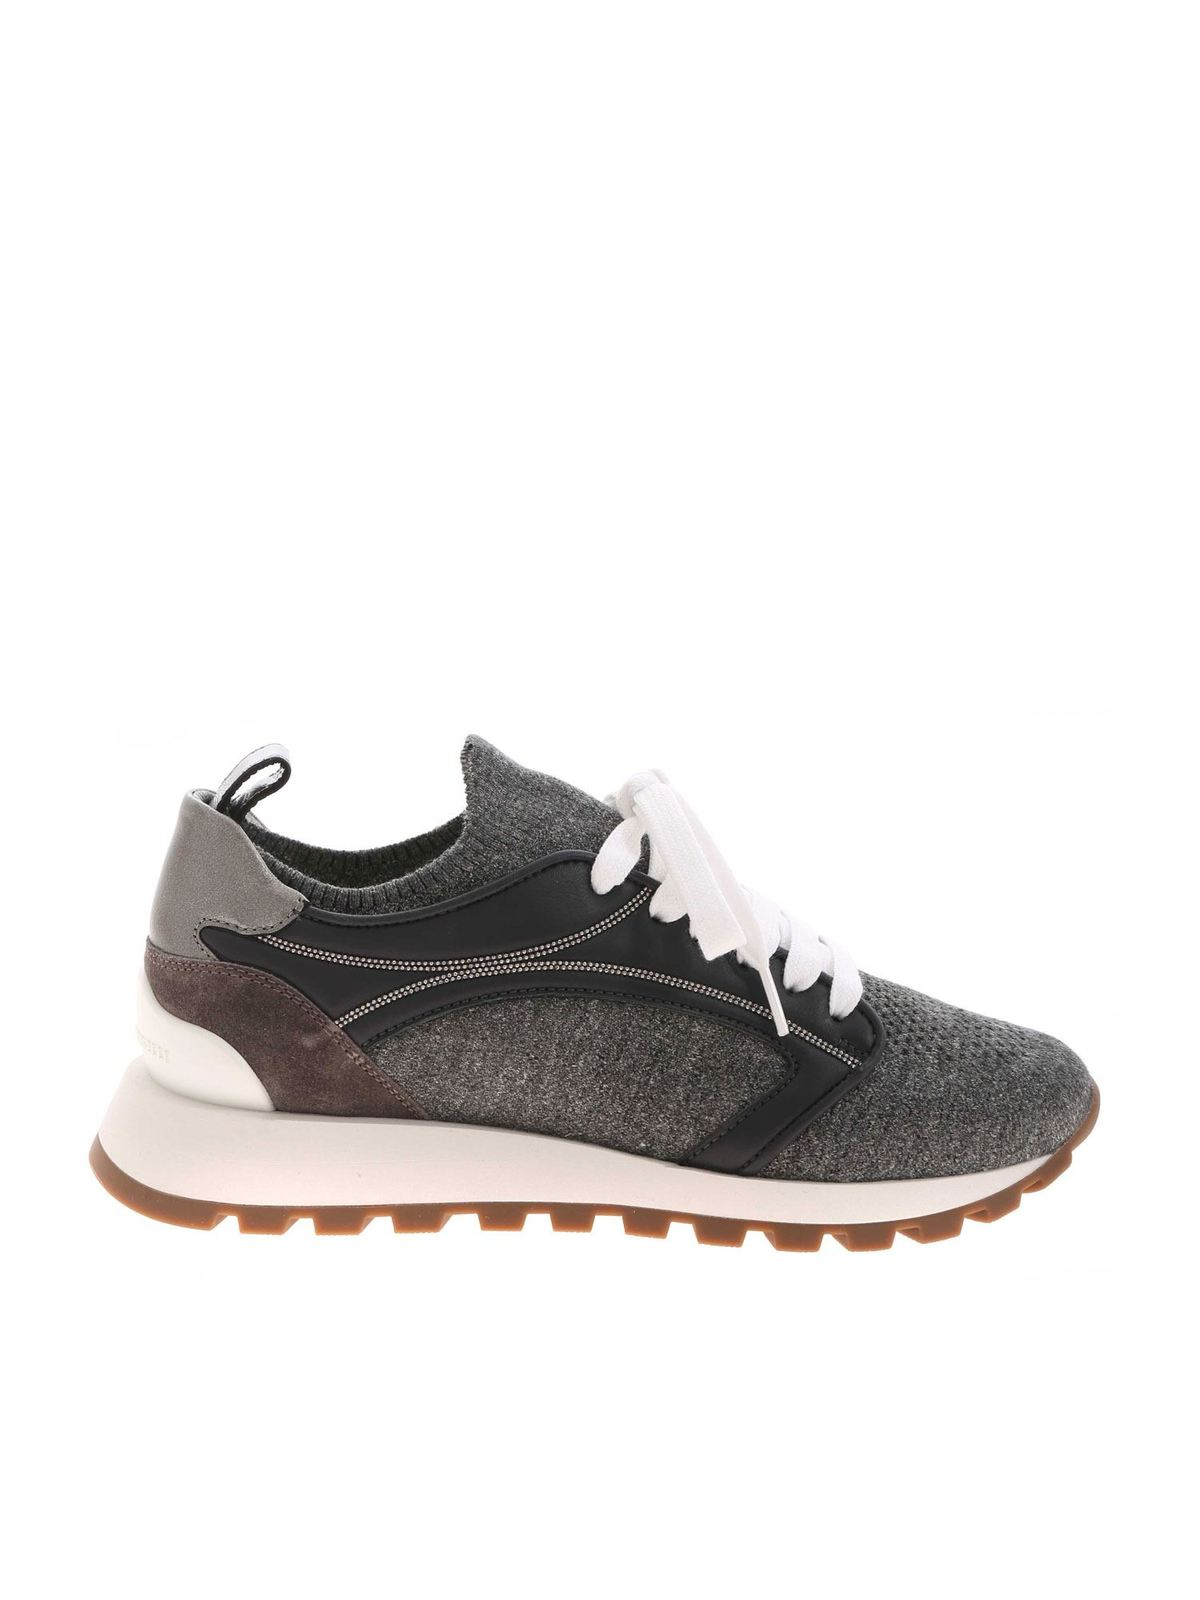 Brunello Cucinelli STRETCH FABRIC AND LEATHER SNEAKERS IN GREY